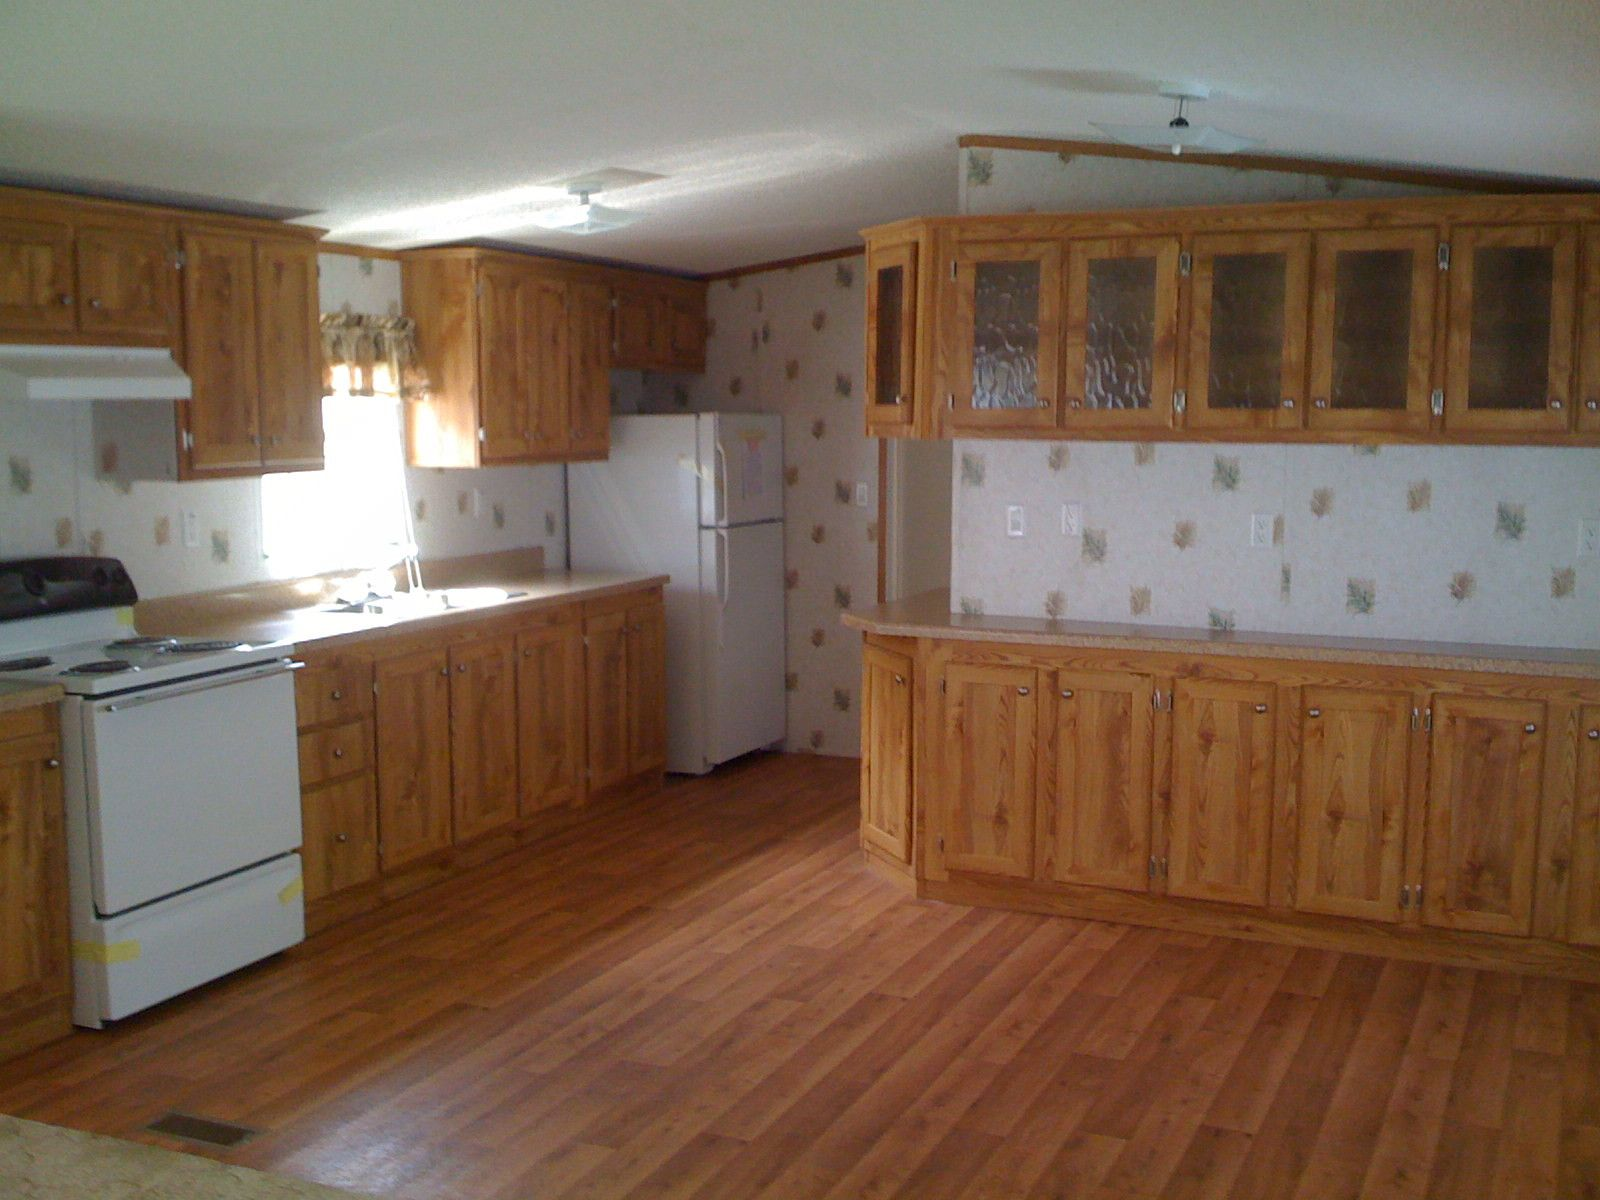 2019 Mobile Home Kitchen Cabinets Discount Kitchen Decor Theme Ideas Check More At Http W Mobile Home Kitchen Cabinets Kitchen Cabinets Mobile Home Kitchen